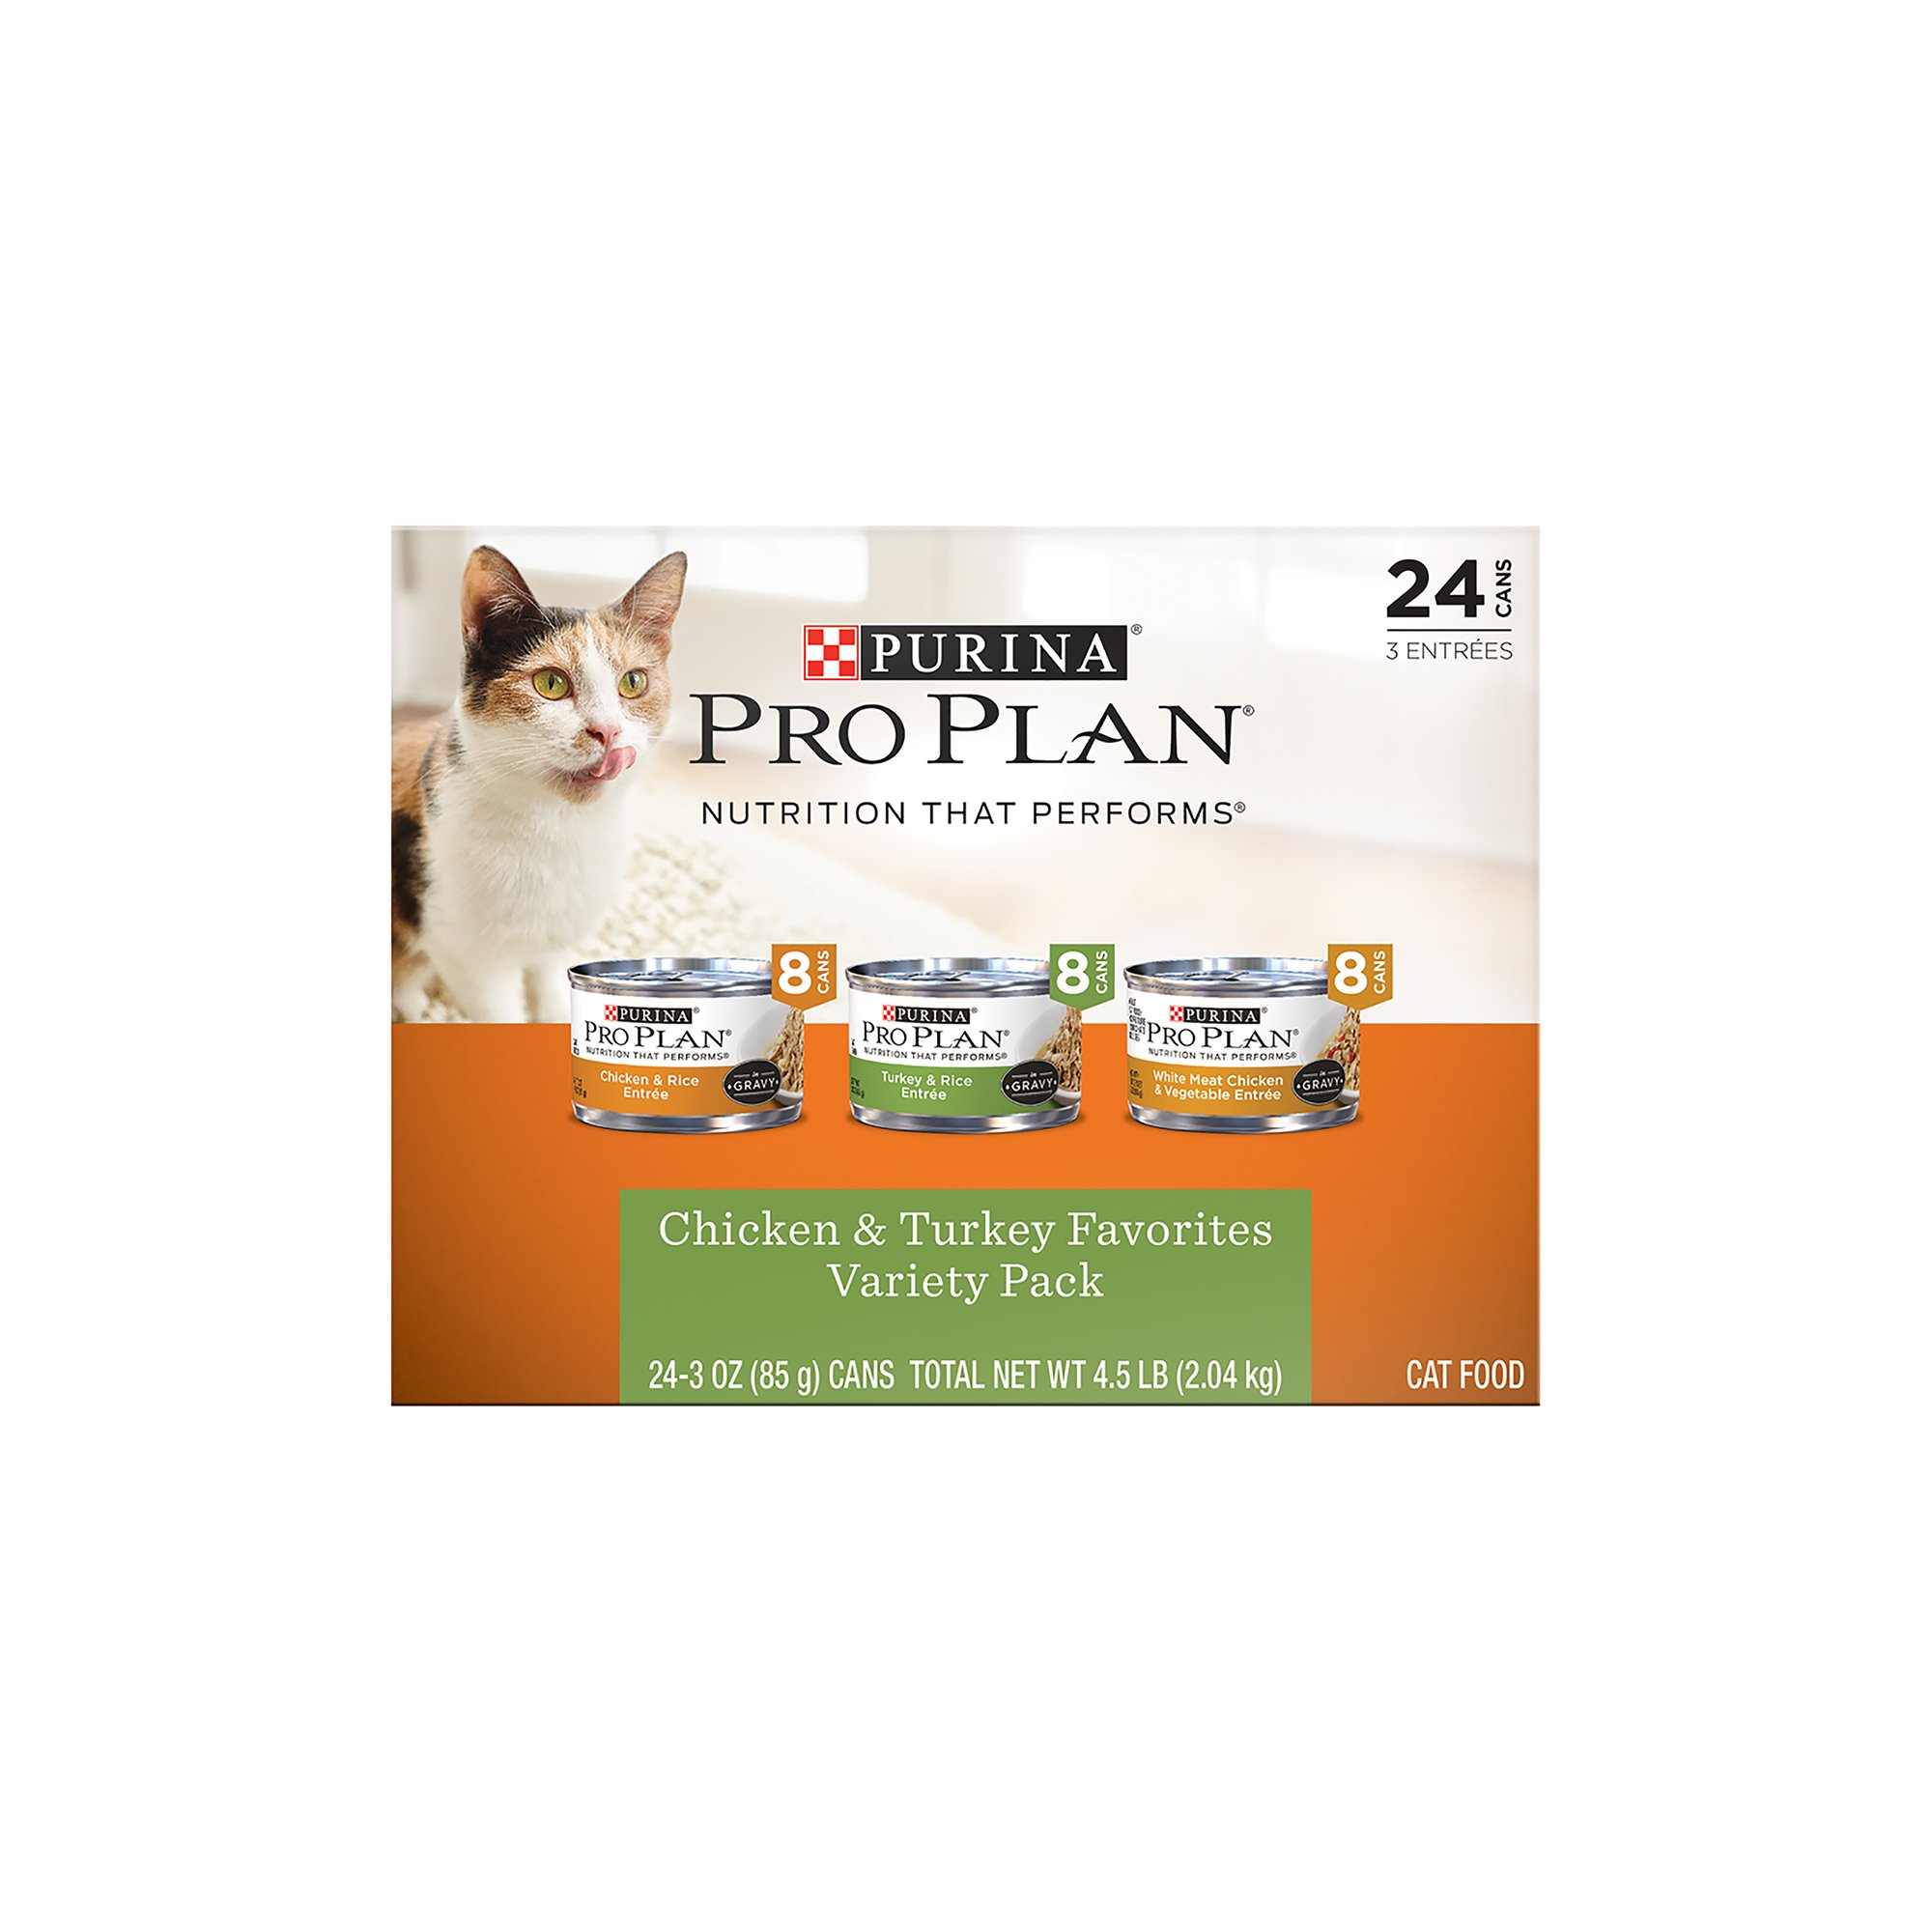 Pro Plan Dog Food Dry